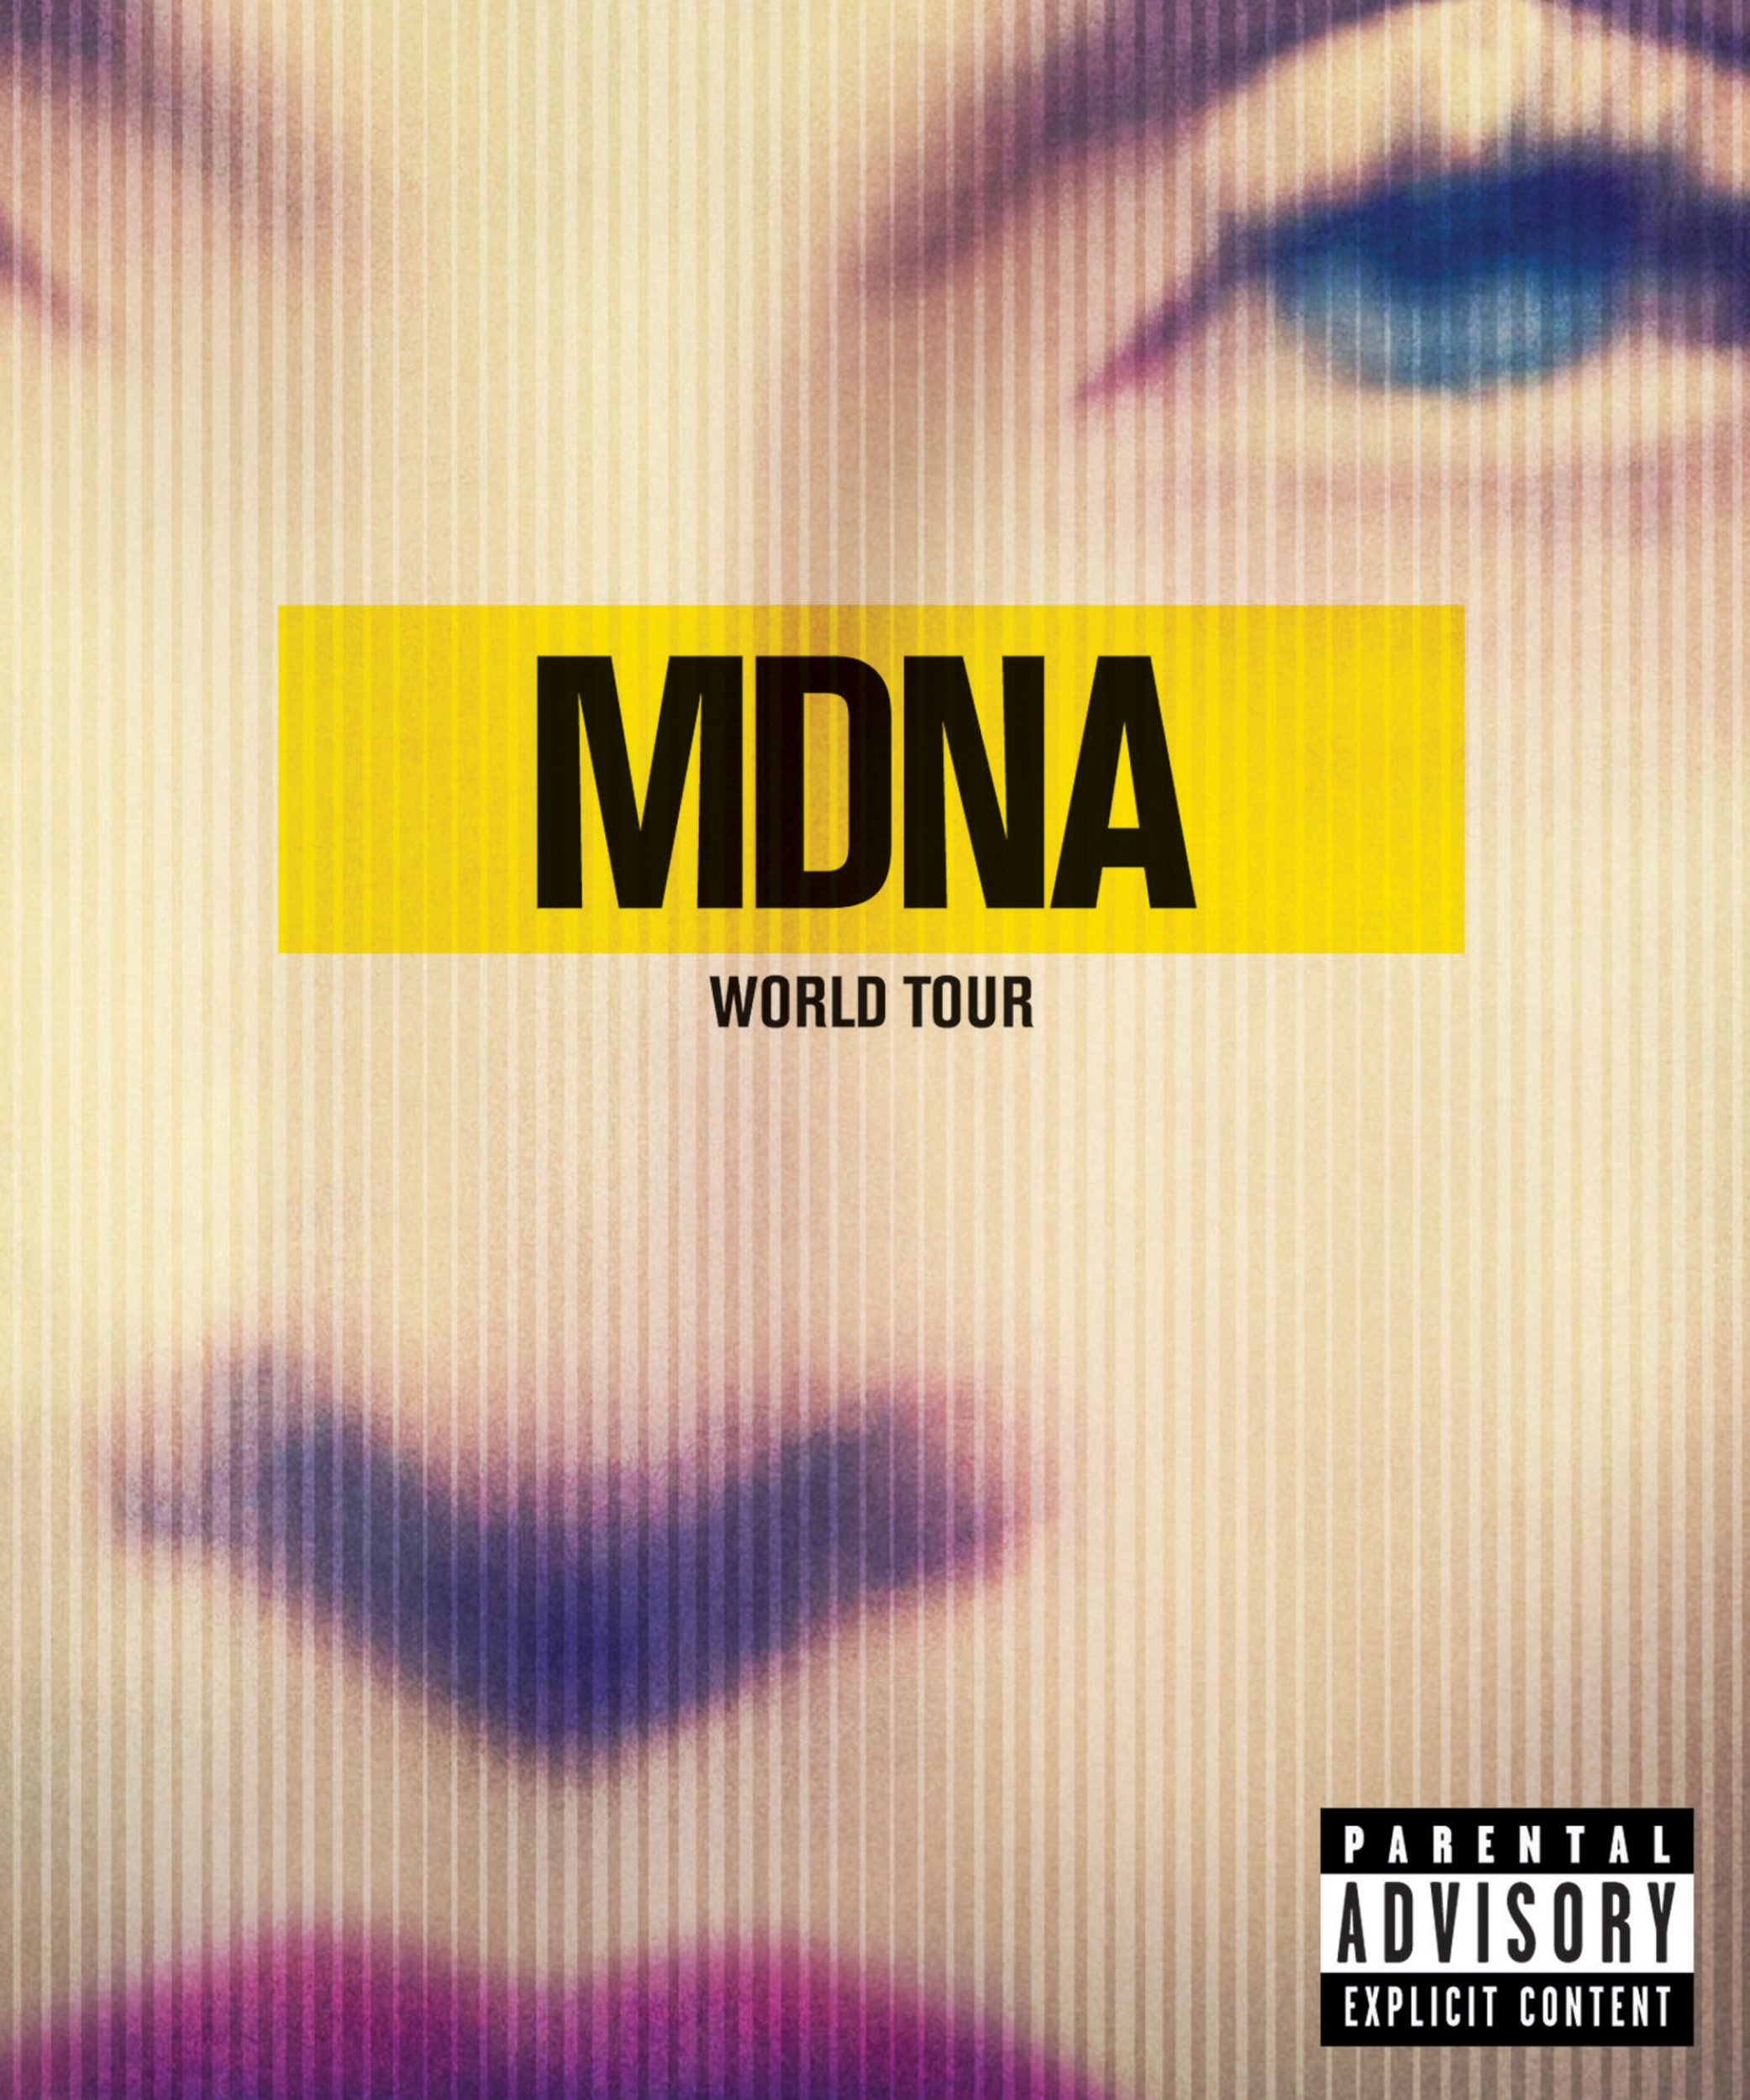 DVD 'The MDNA World Tour'  II 20130812-pictures-madonna-mdna-tour-different-covers-blu-ray